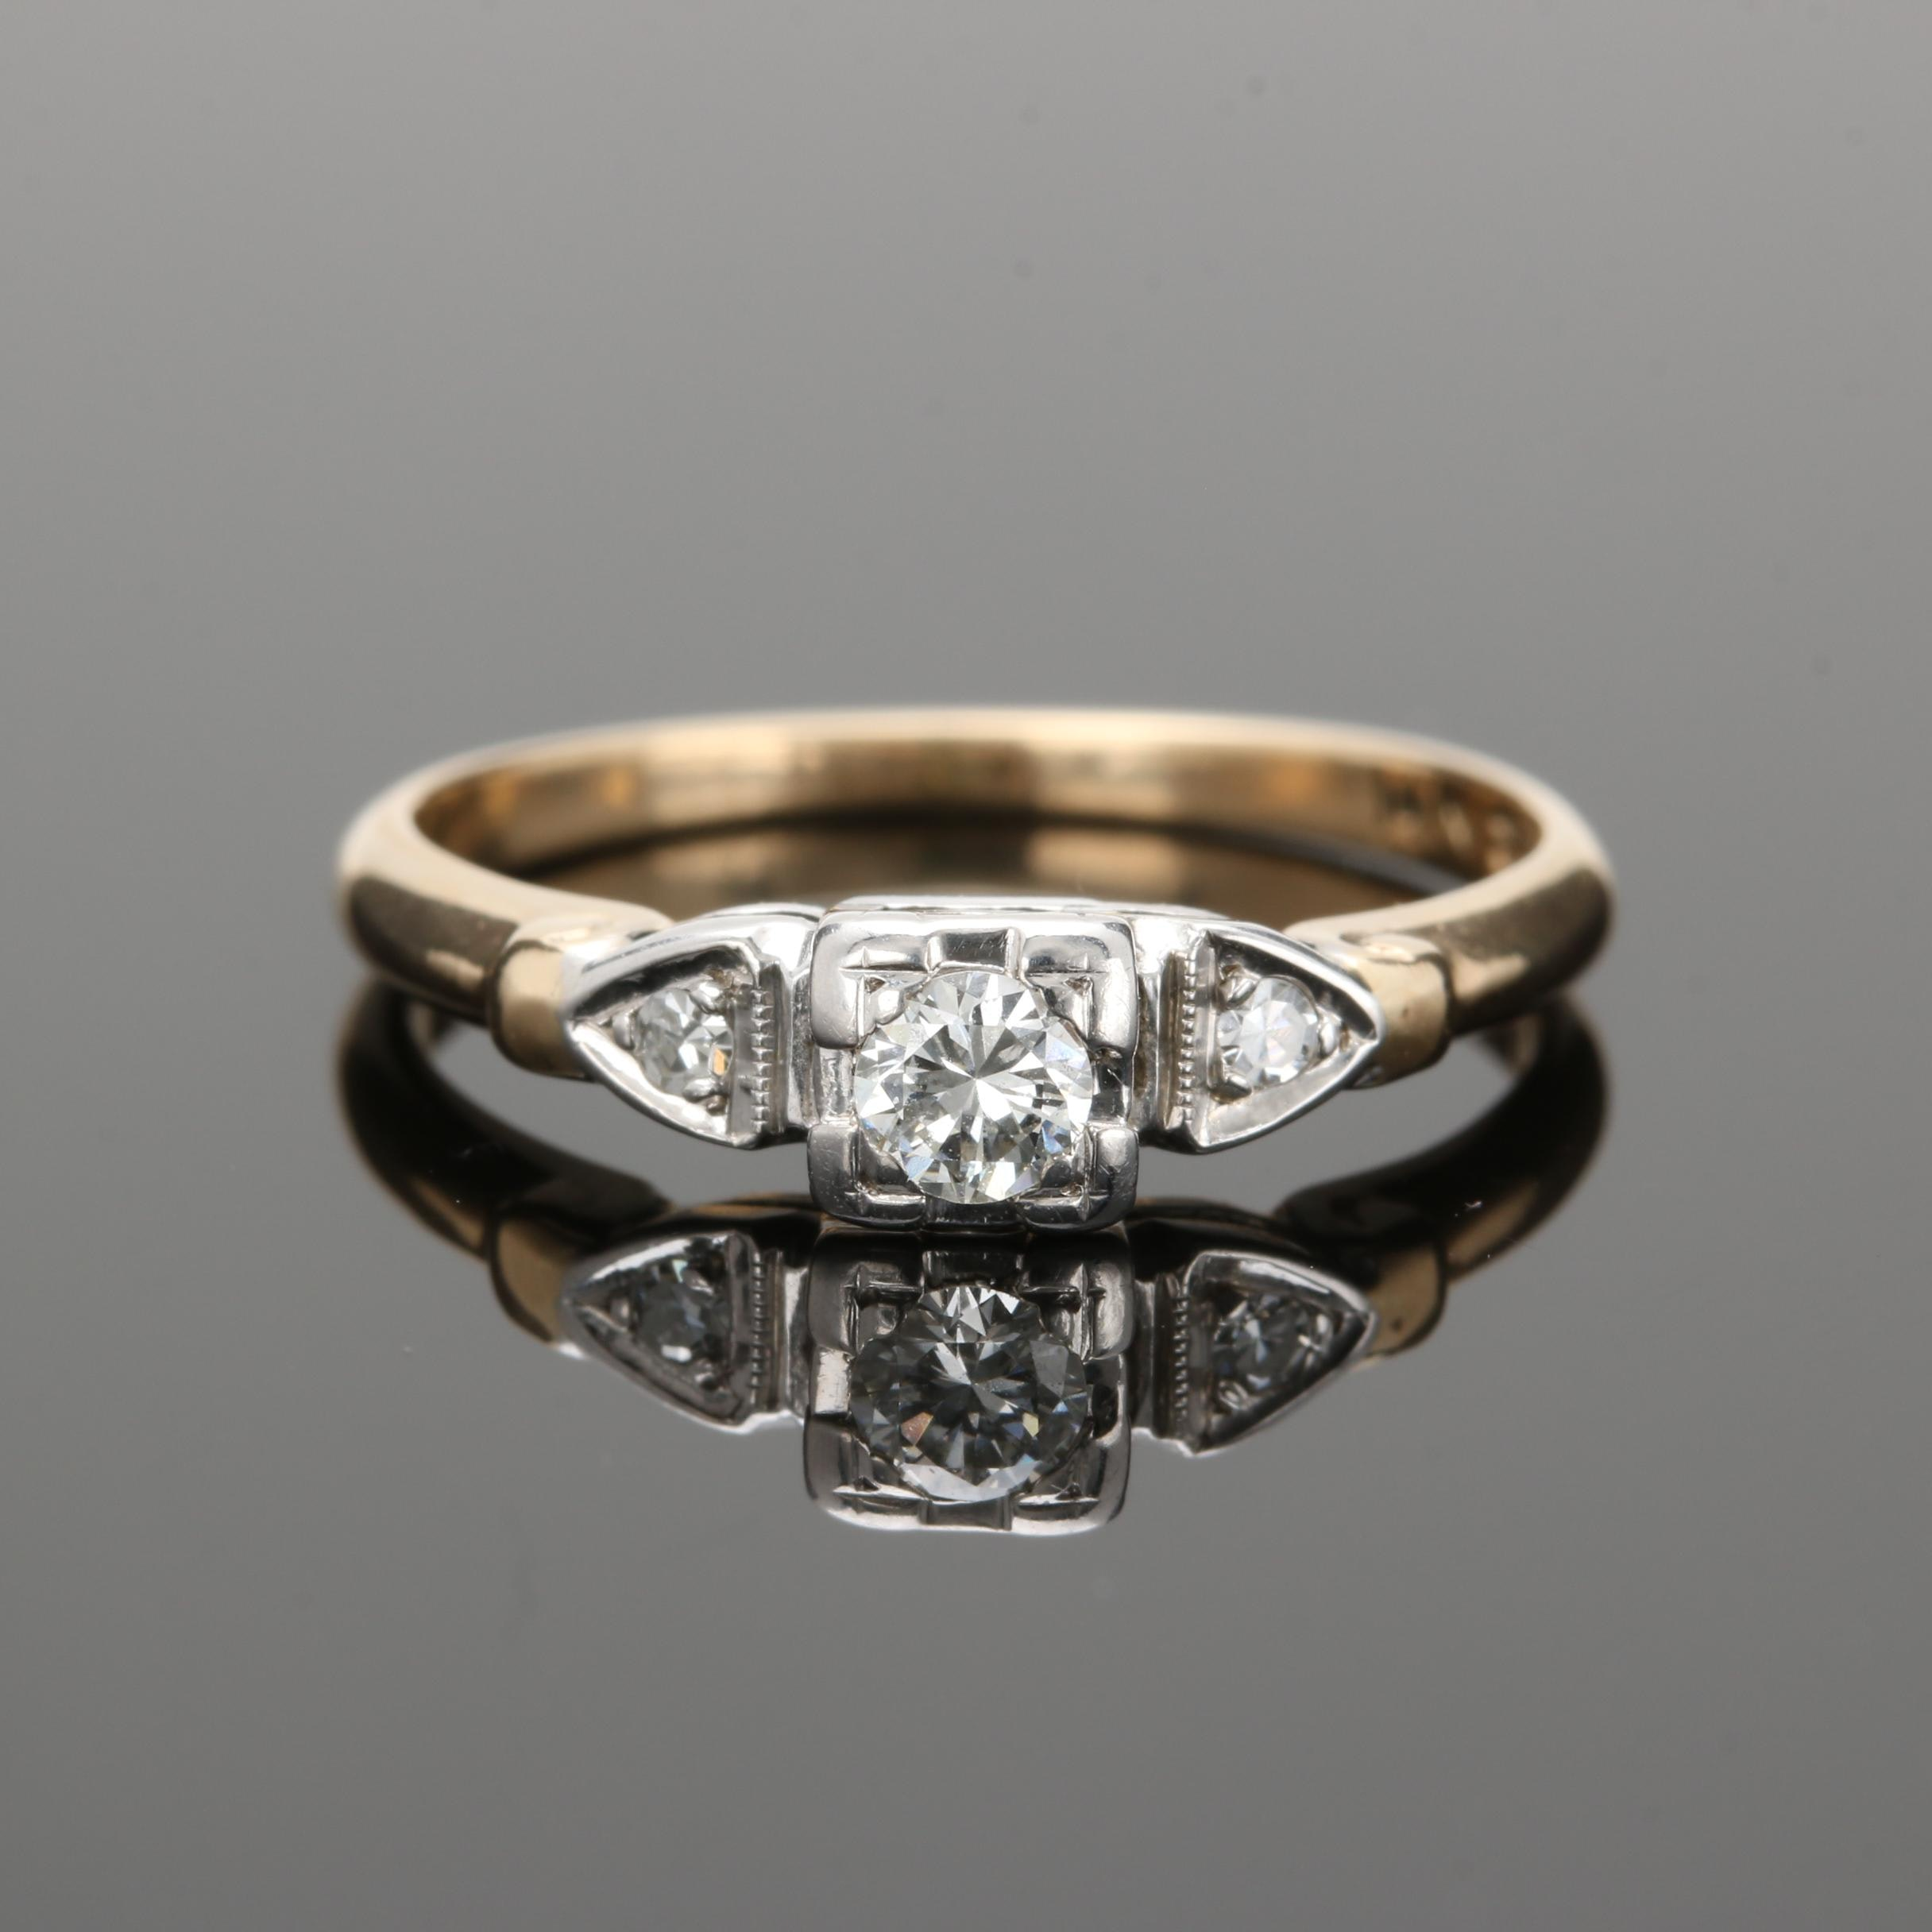 14K Yellow Gold Diamond Ring with 14K White Gold Settings